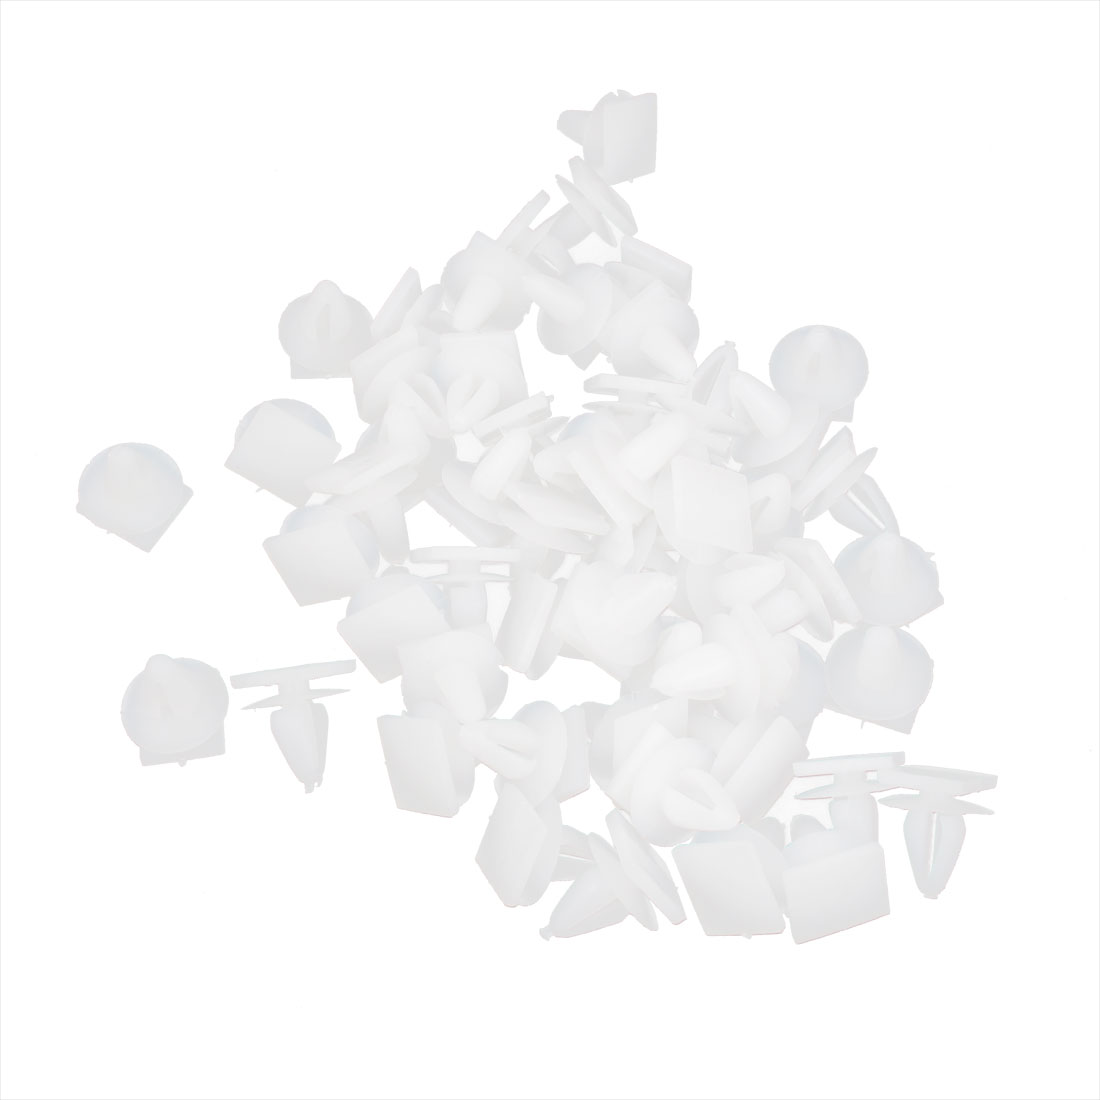 White 8mm Hole Vehicle Car Door Plastic Rivet Fastener Trim Panel Retainer Clip 50pcs